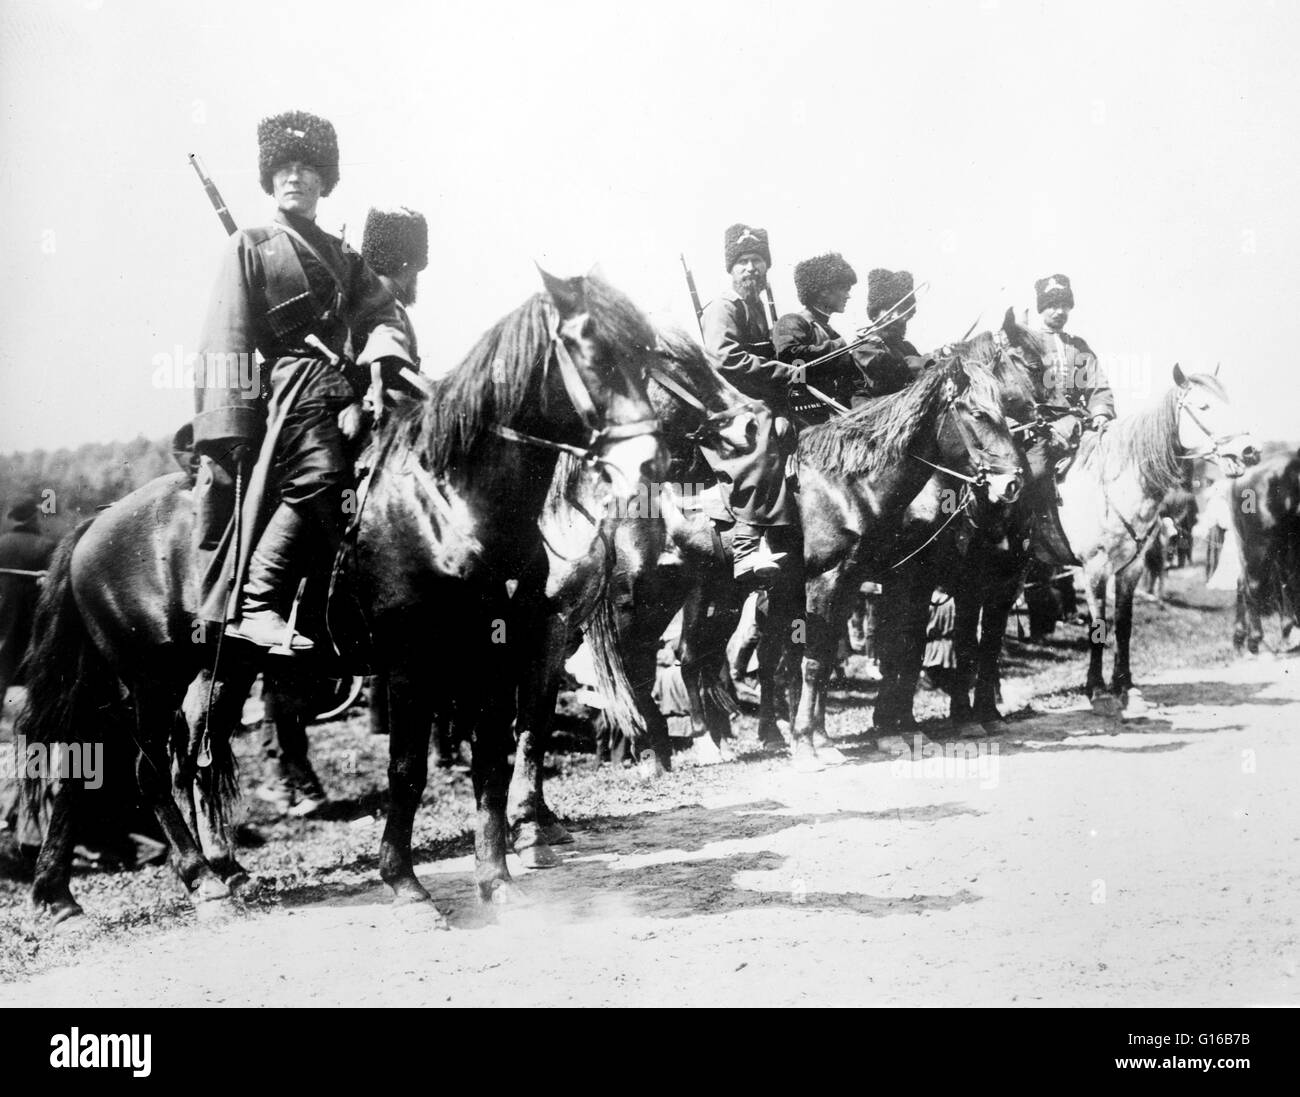 Russian cossacks during World War I. At the outbreak of World War I the mounted Cossacks made up 38 regiments, plus - Stock Image